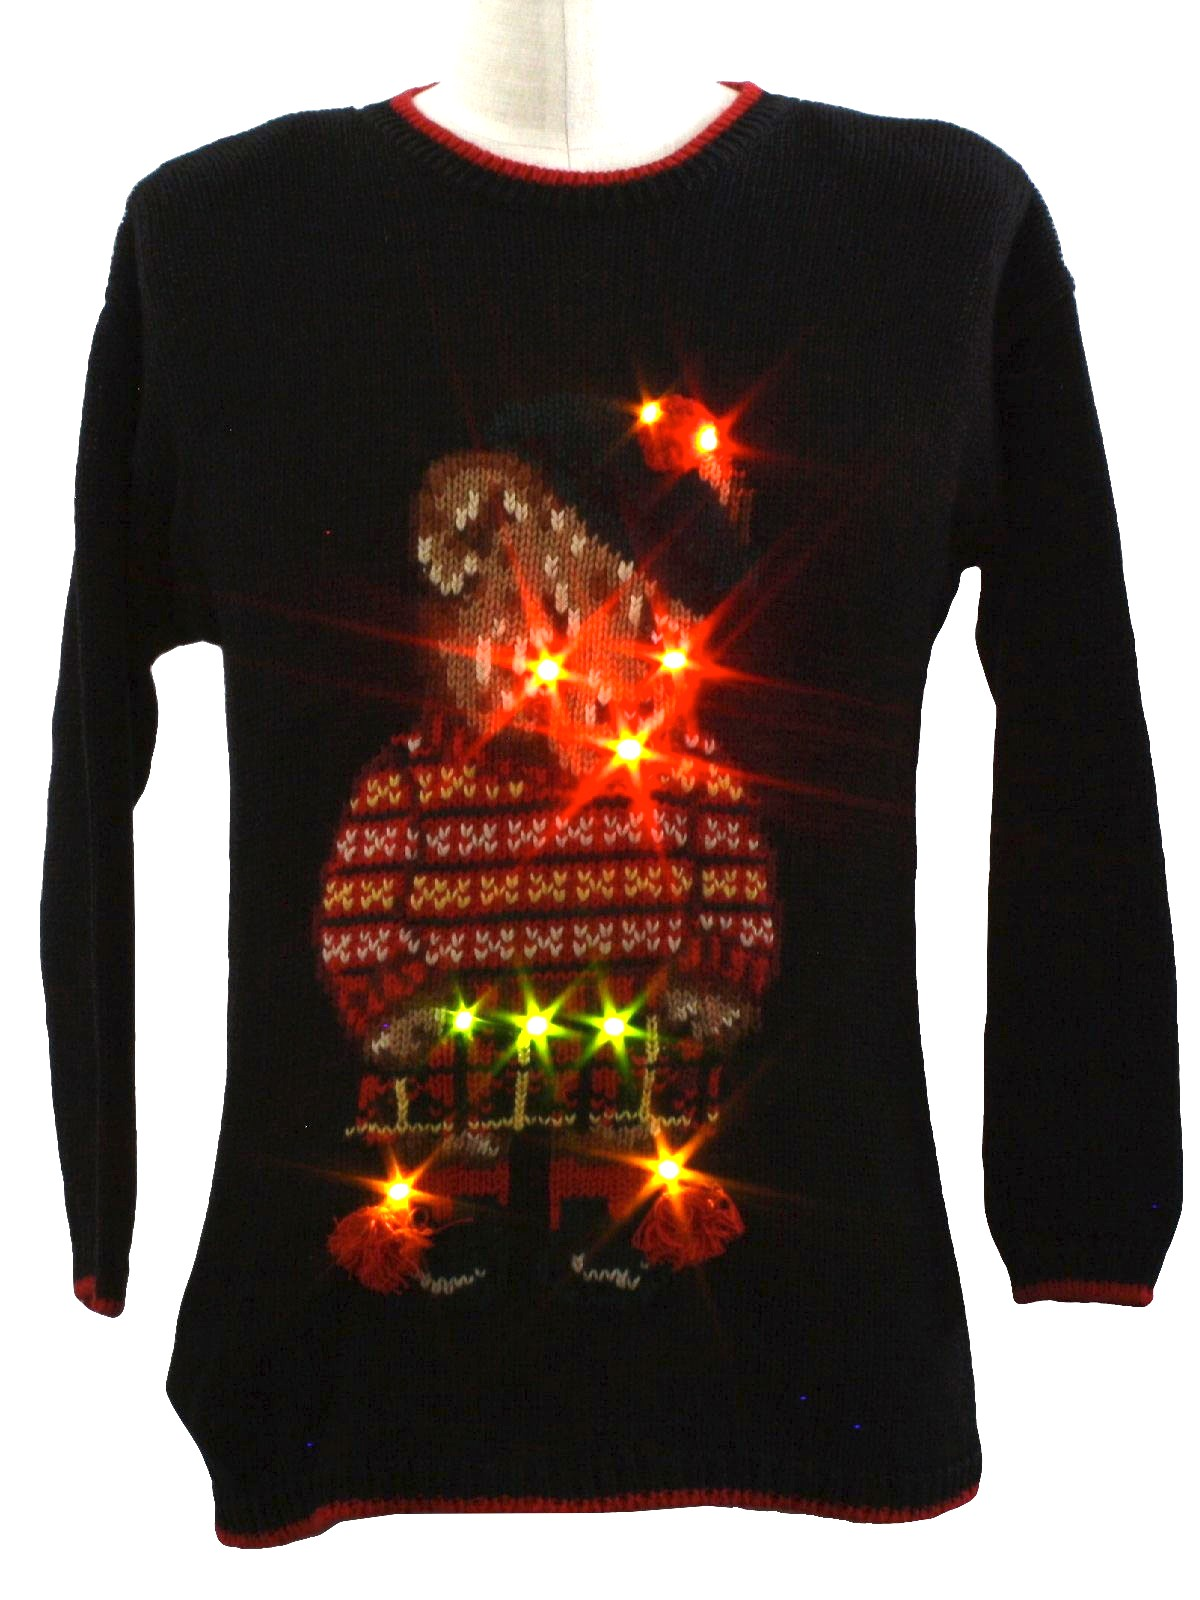 Bear Riffic Lightup Ugly Christmas Sweater Retro Look The Eagles